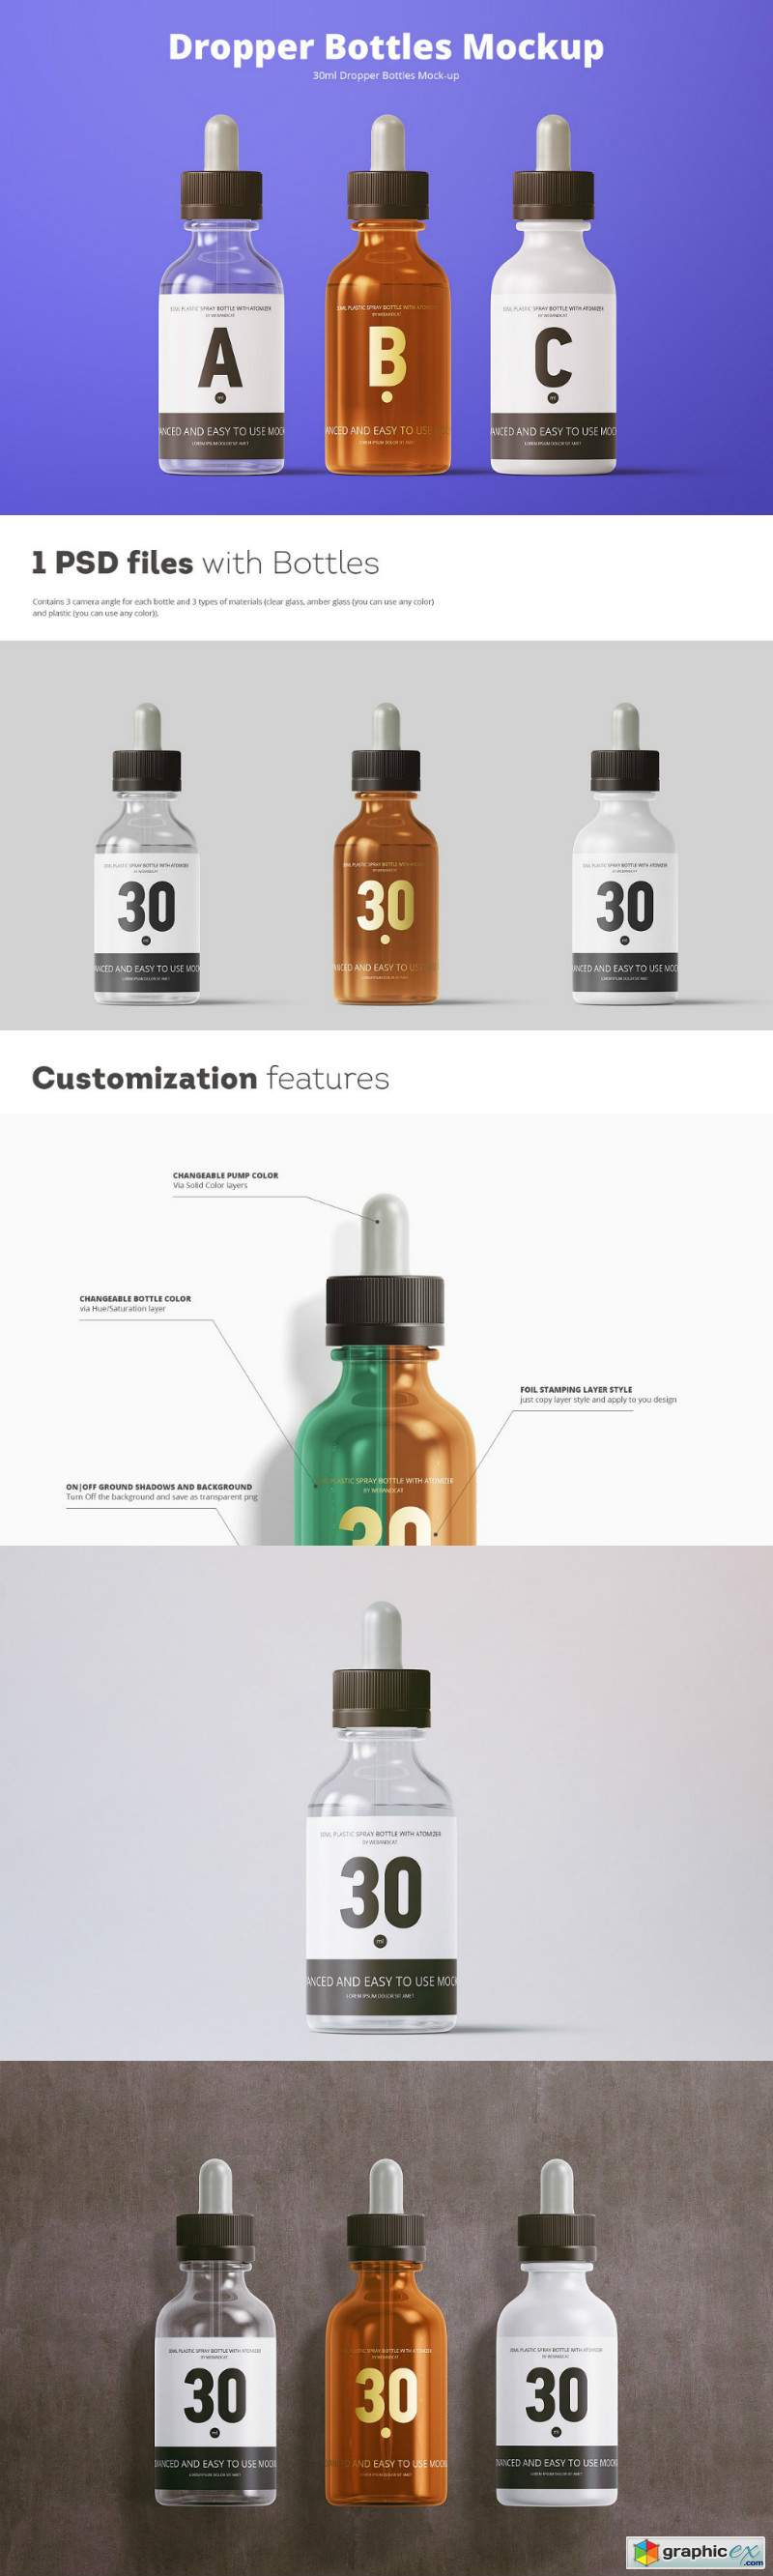 30ml Dropper Bottles Mockup 3734493